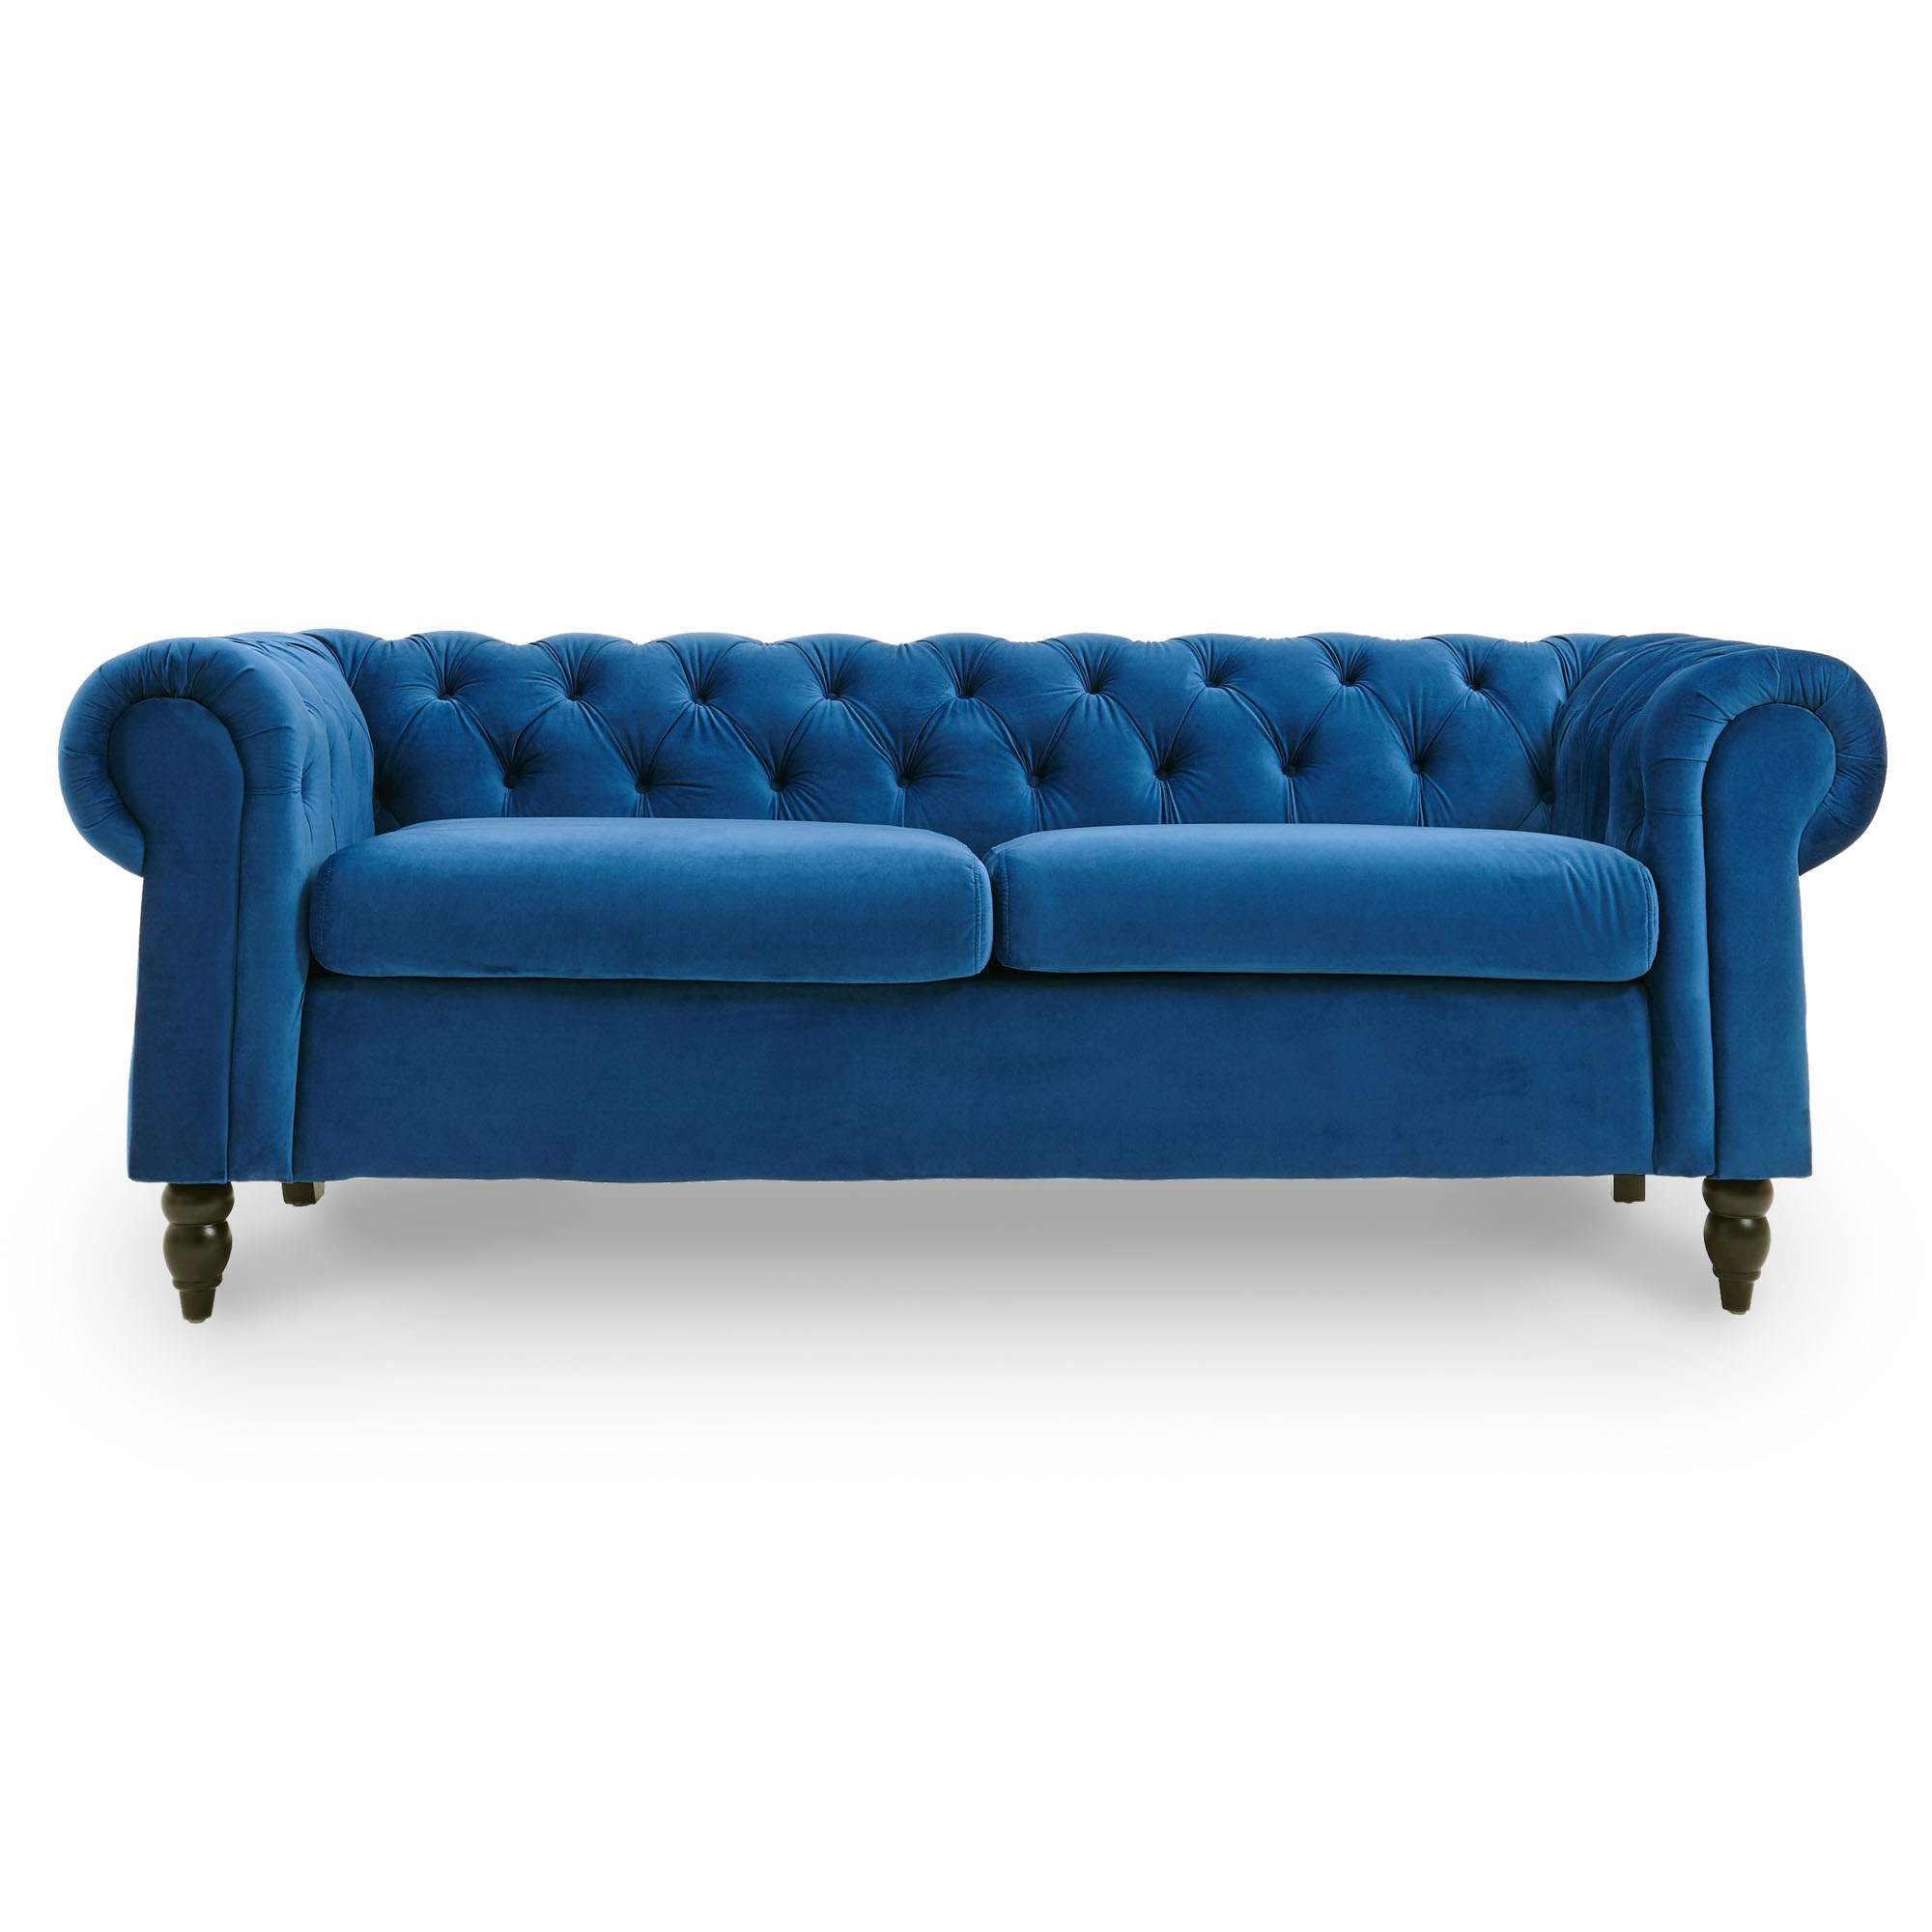 Canape Chesterfield 3 Places En Velours Bleu Winston - Dip dedans Canape Winston But